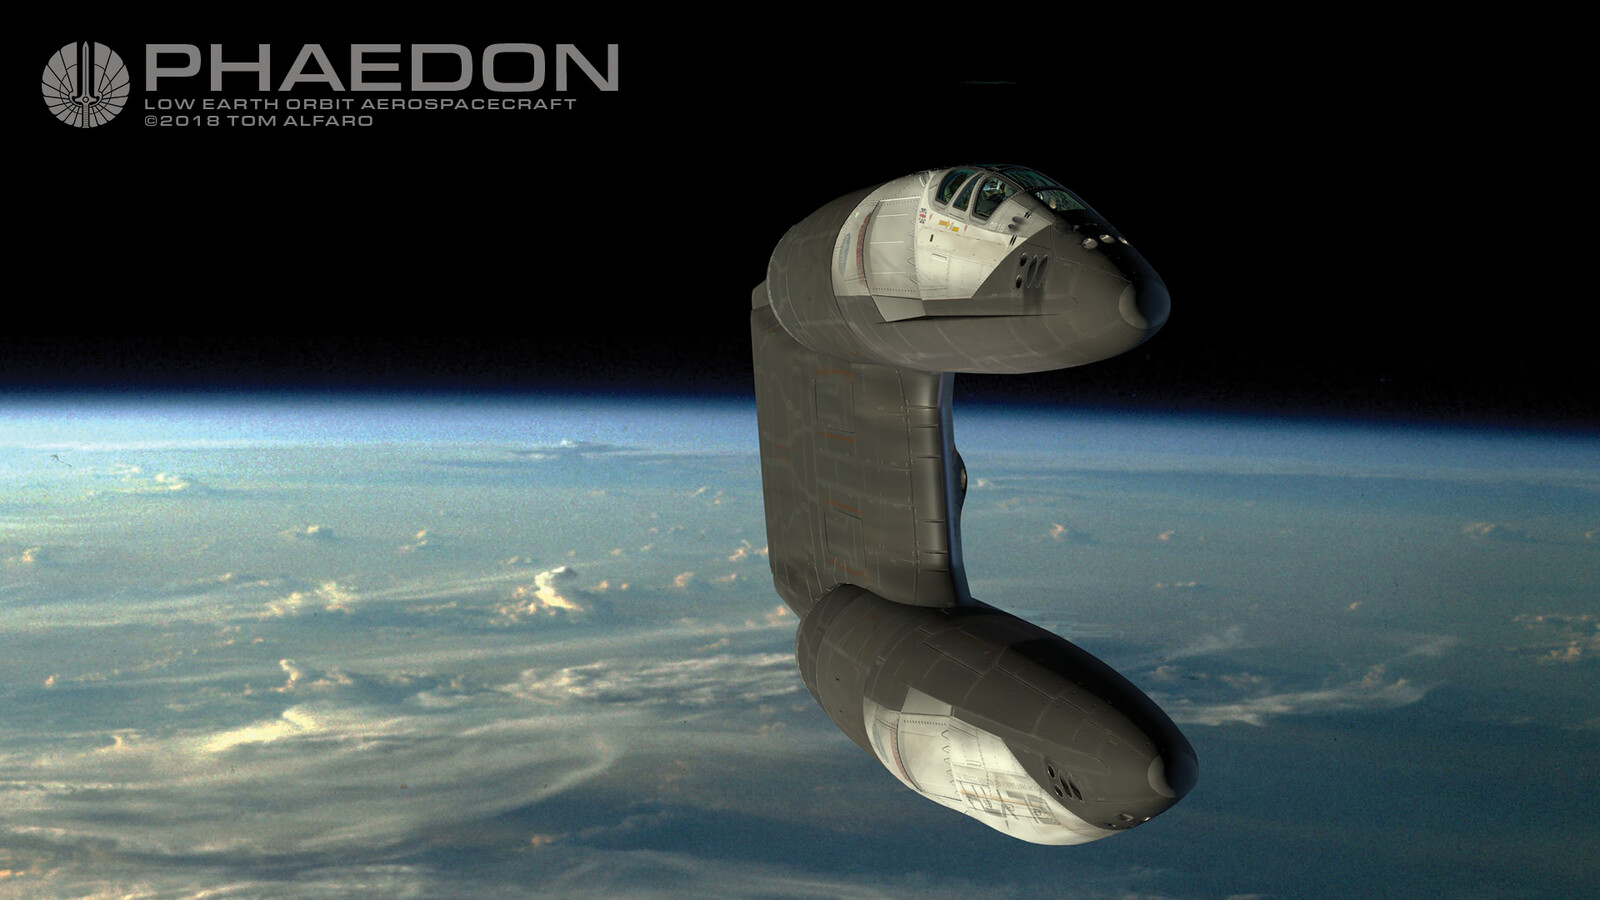 Phaedon on orbit